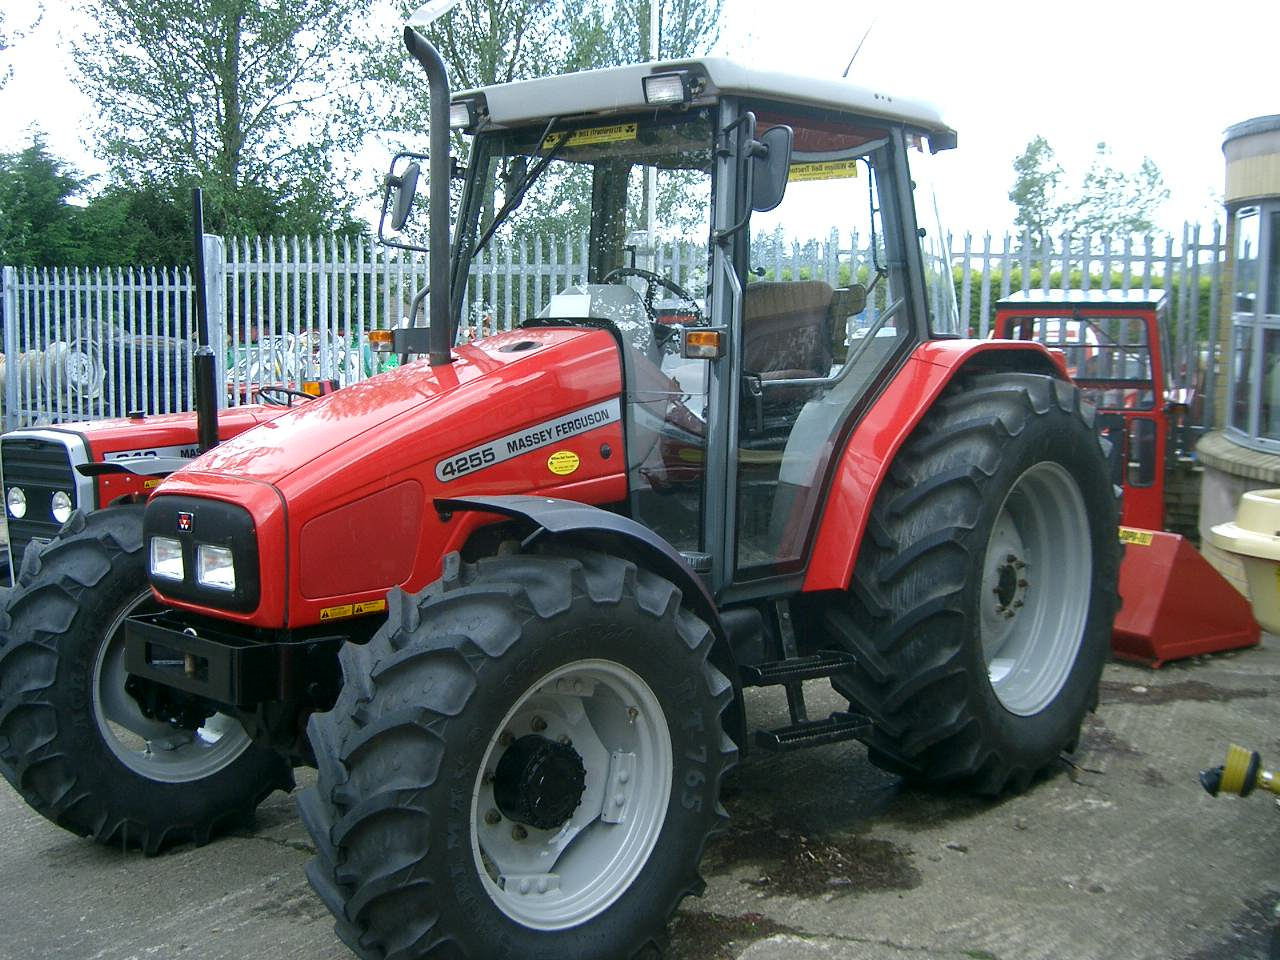 Massey ferguson 400 photo - 5